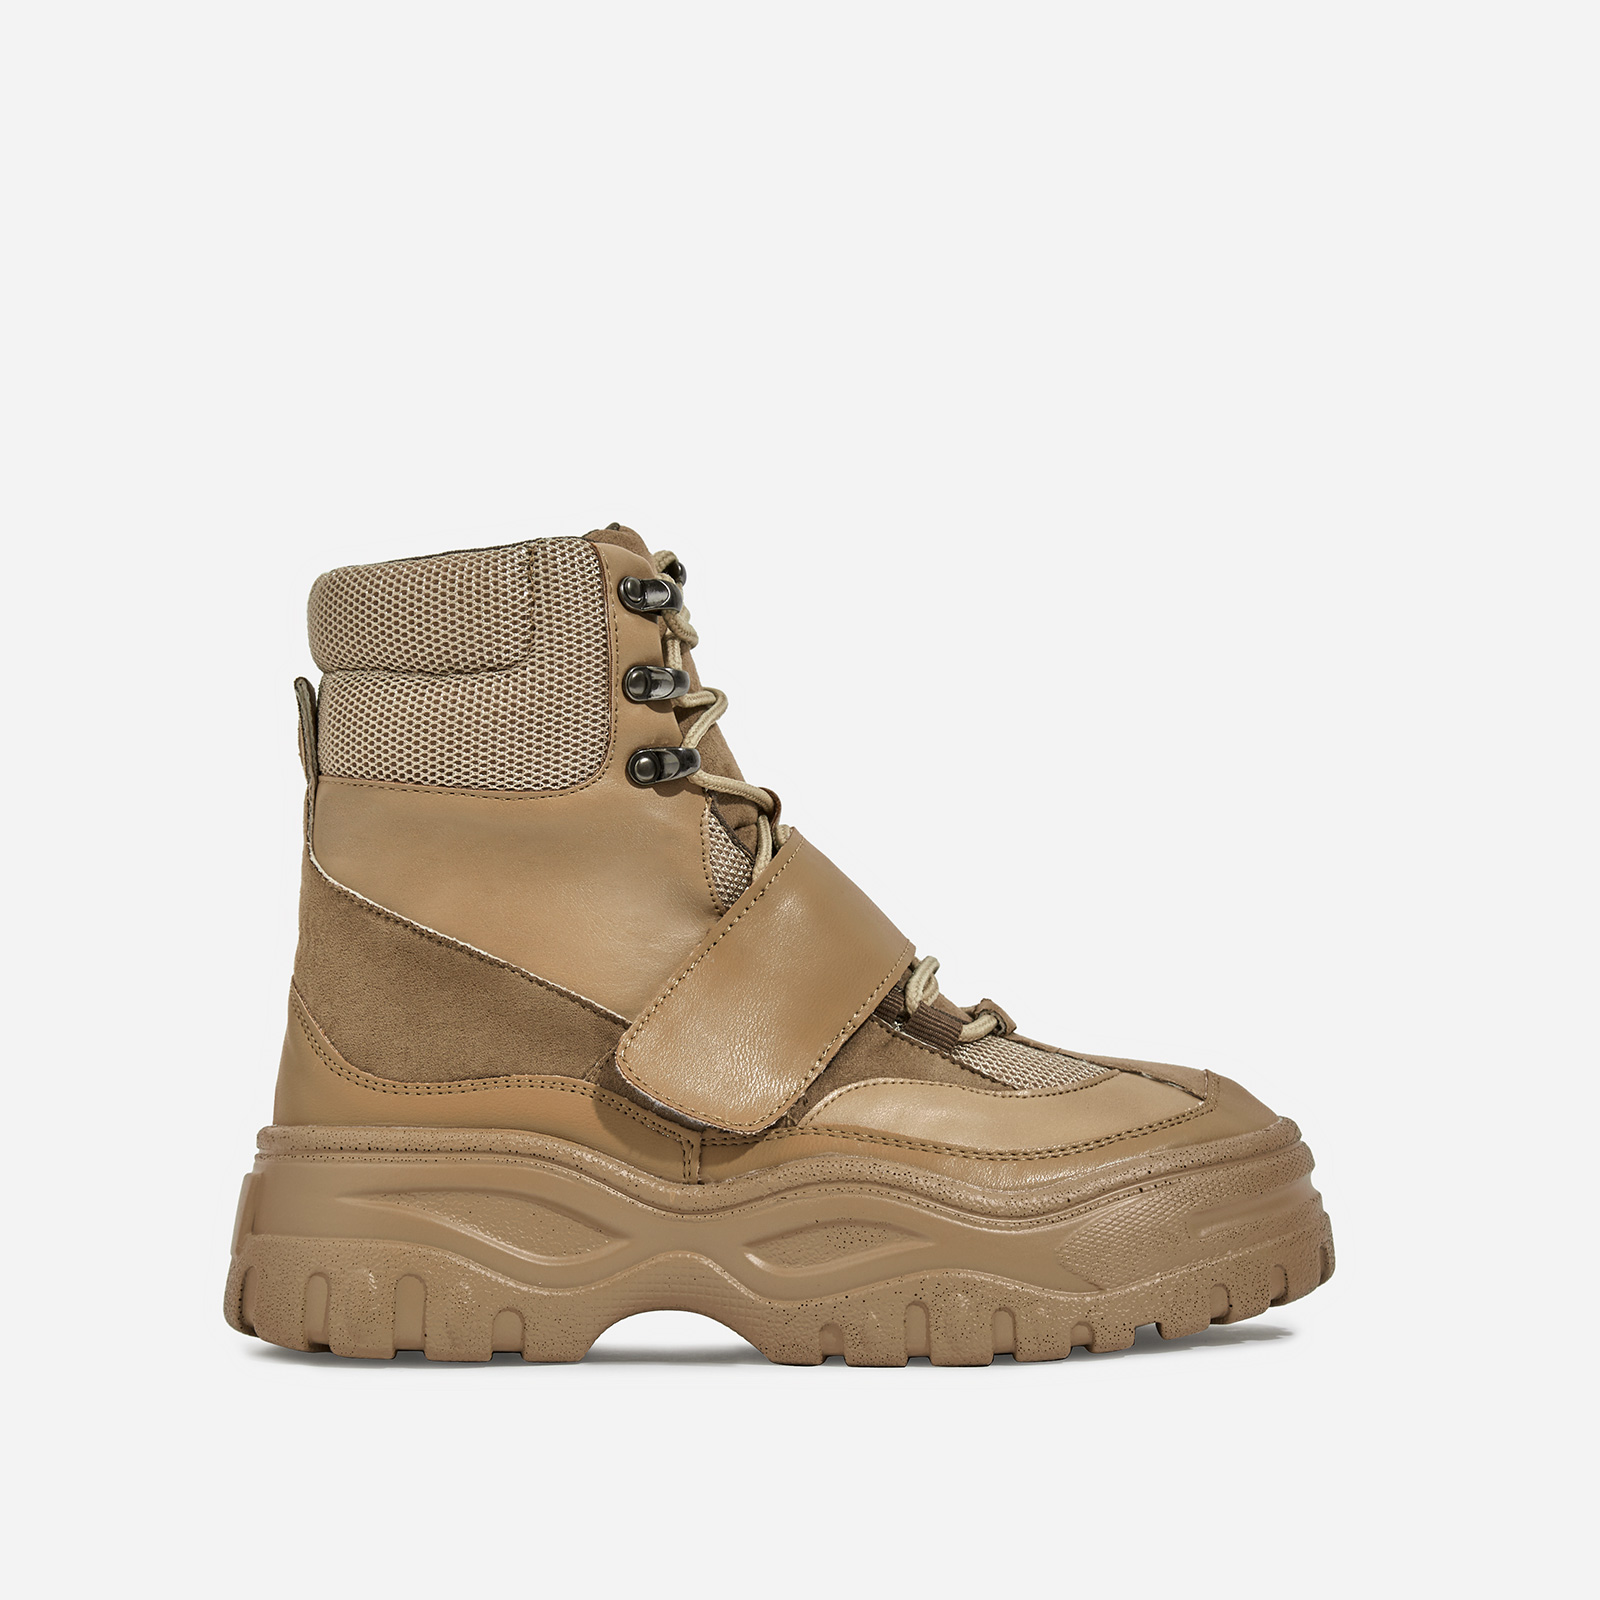 Rover Lace Up Ankle Hiker Boot In Khaki Faux Leather And Suede